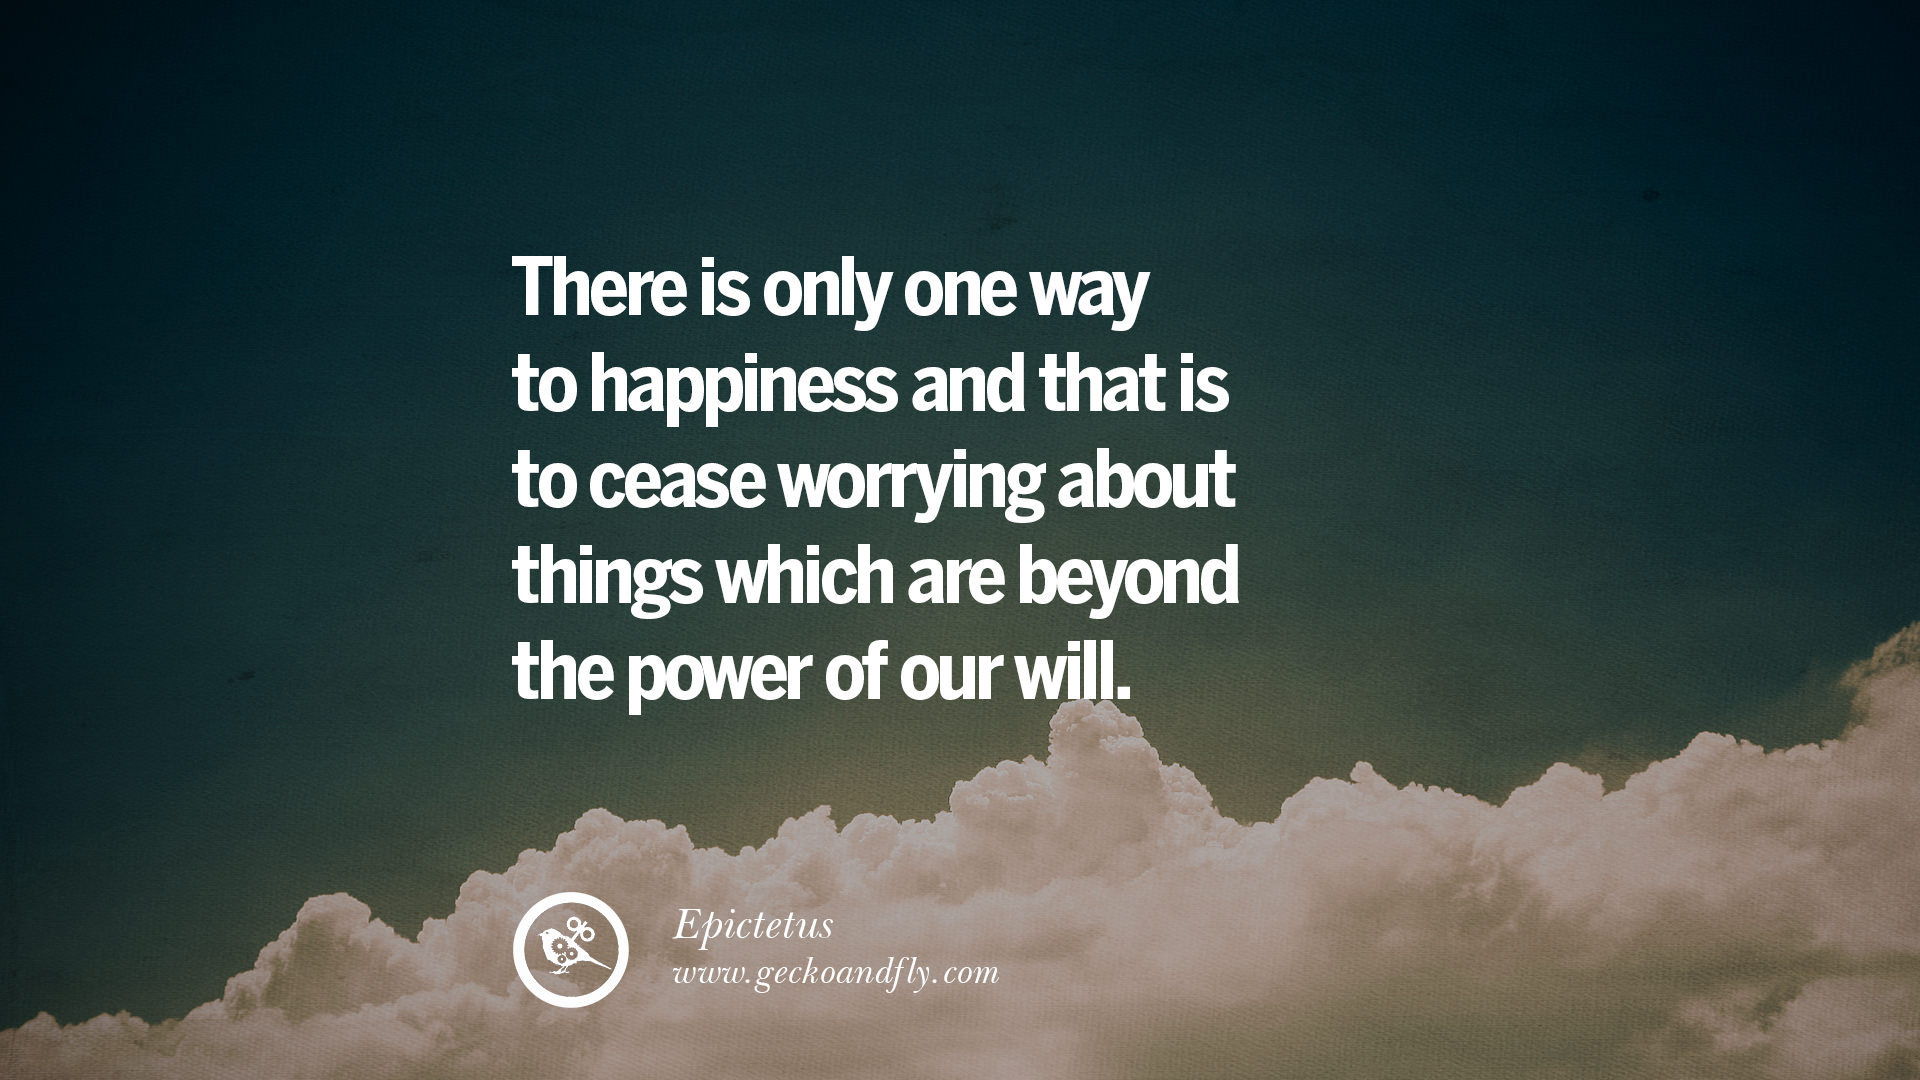 Quotes Happiness 21 Quotes About Pursuit Of Happiness To Change Your Thinking